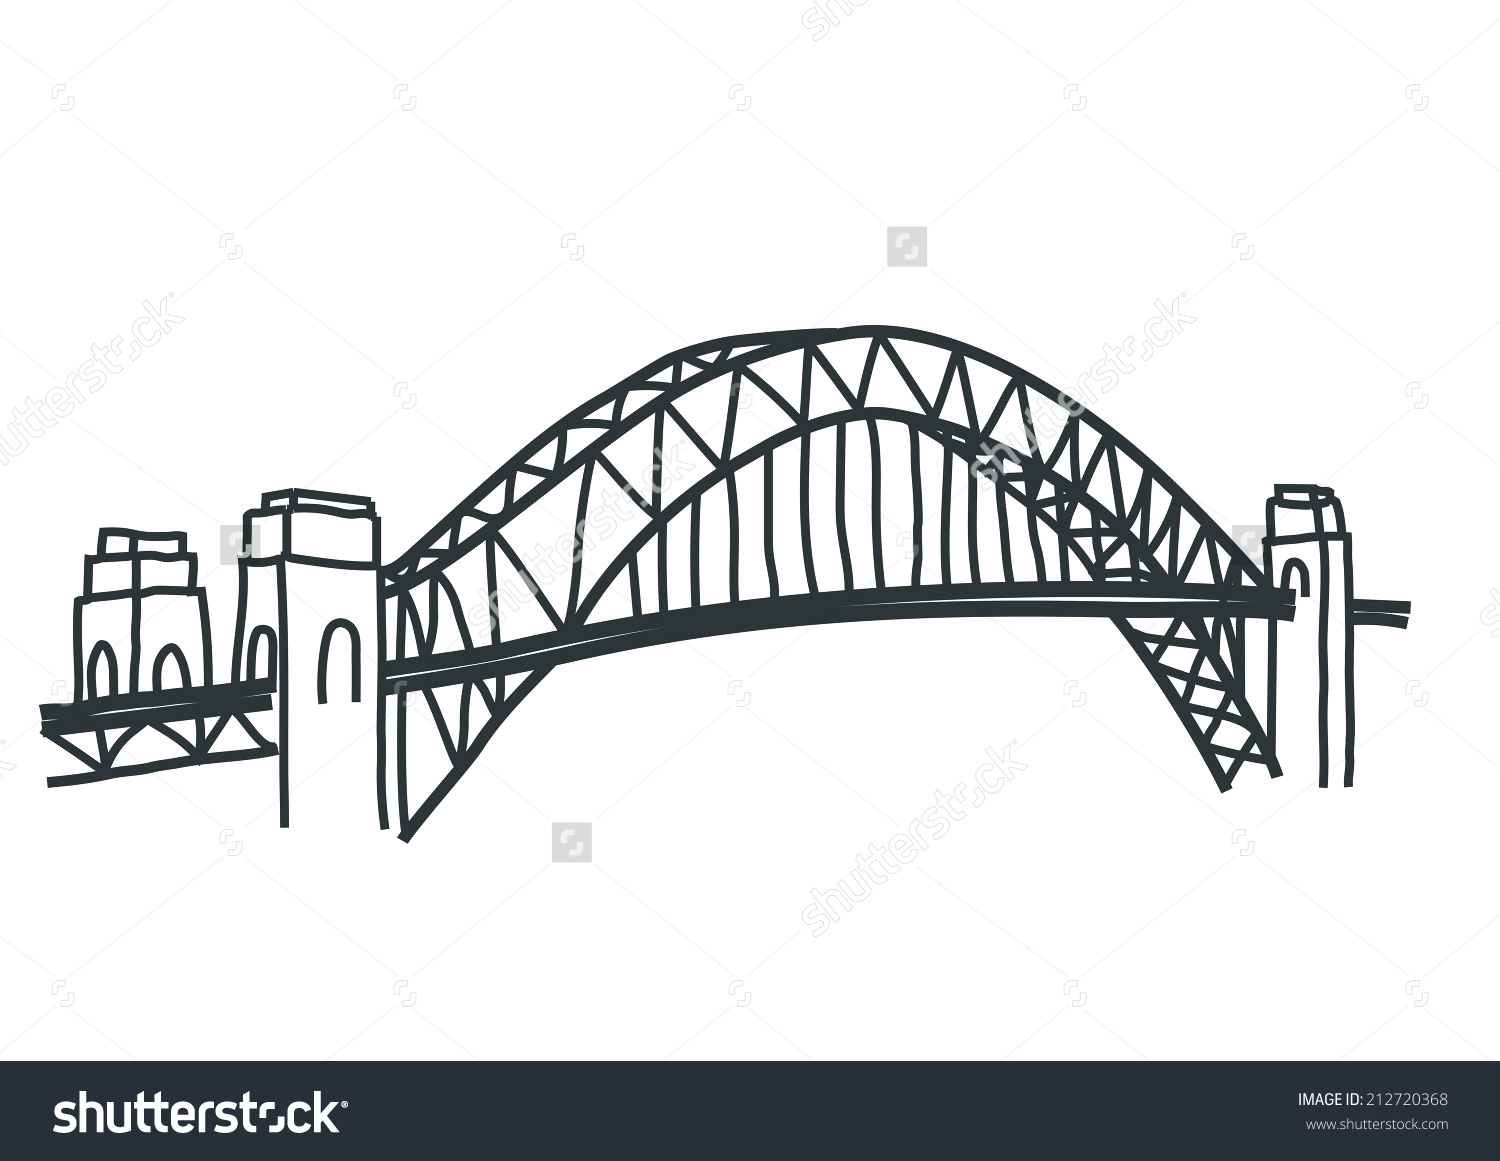 Sydney Harbour Bridge coloring #4, Download drawings